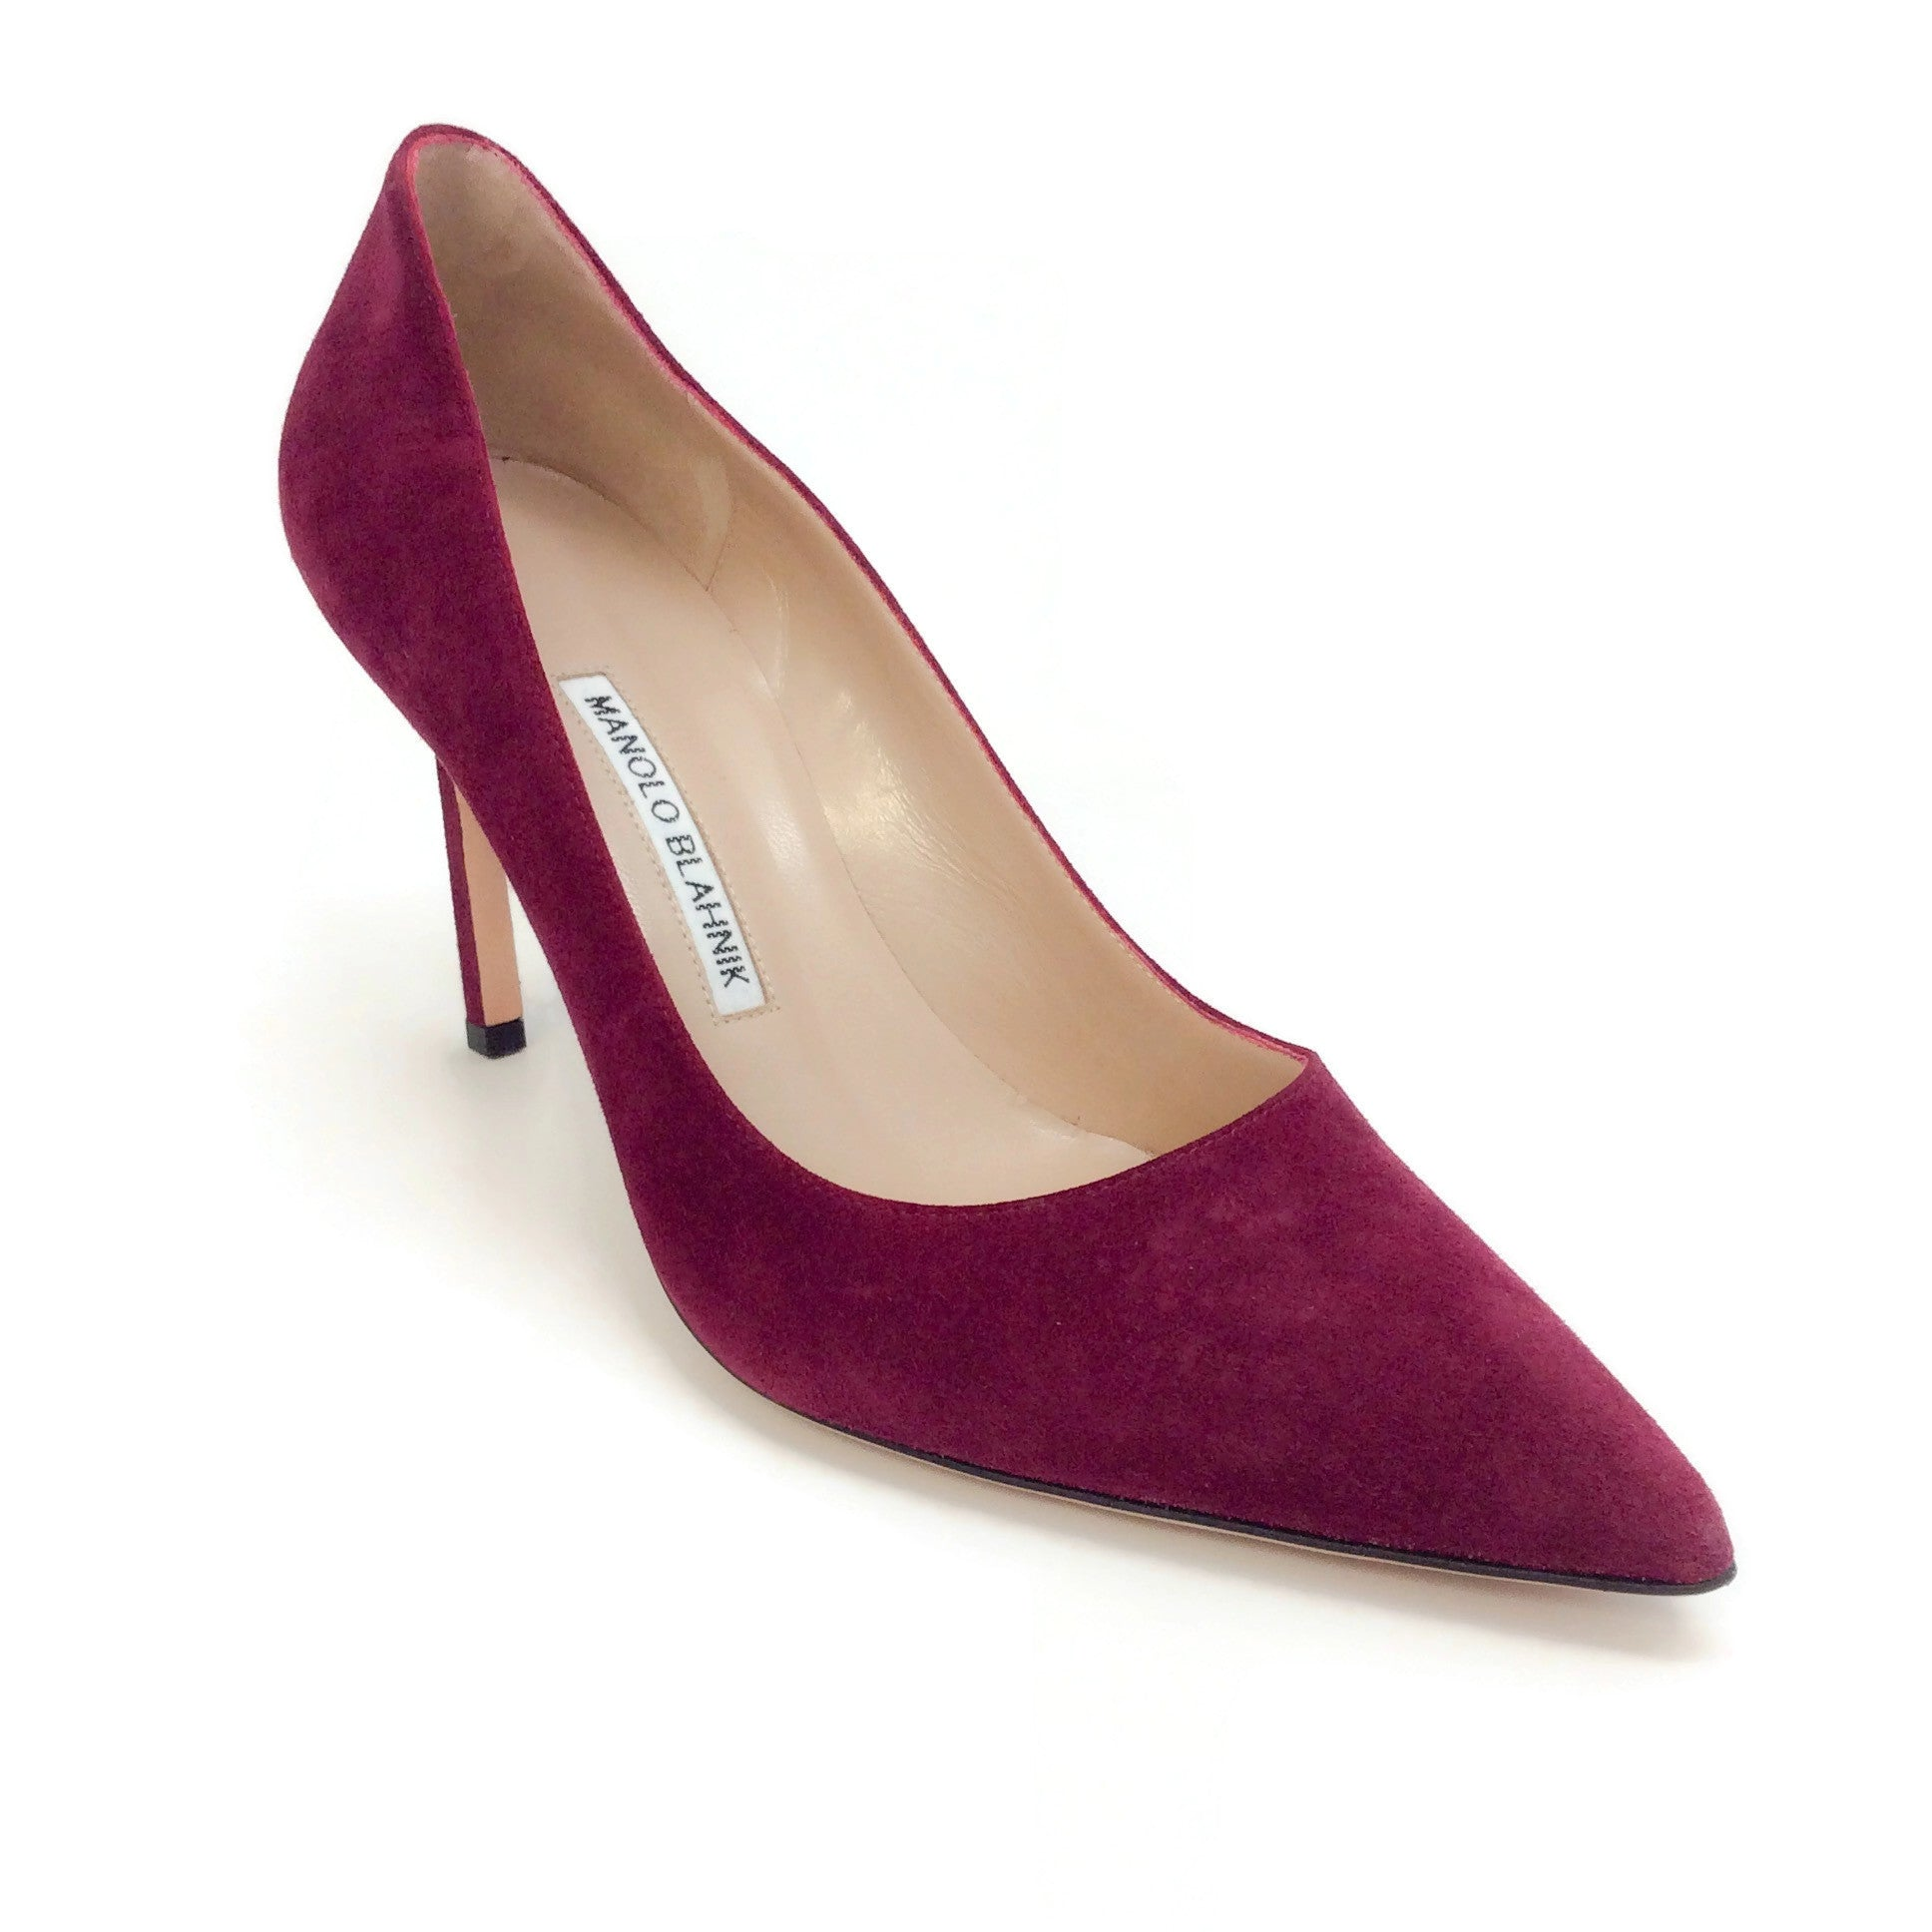 Manolo Blahnik Oxblood Bb 90 Asiago Pumps